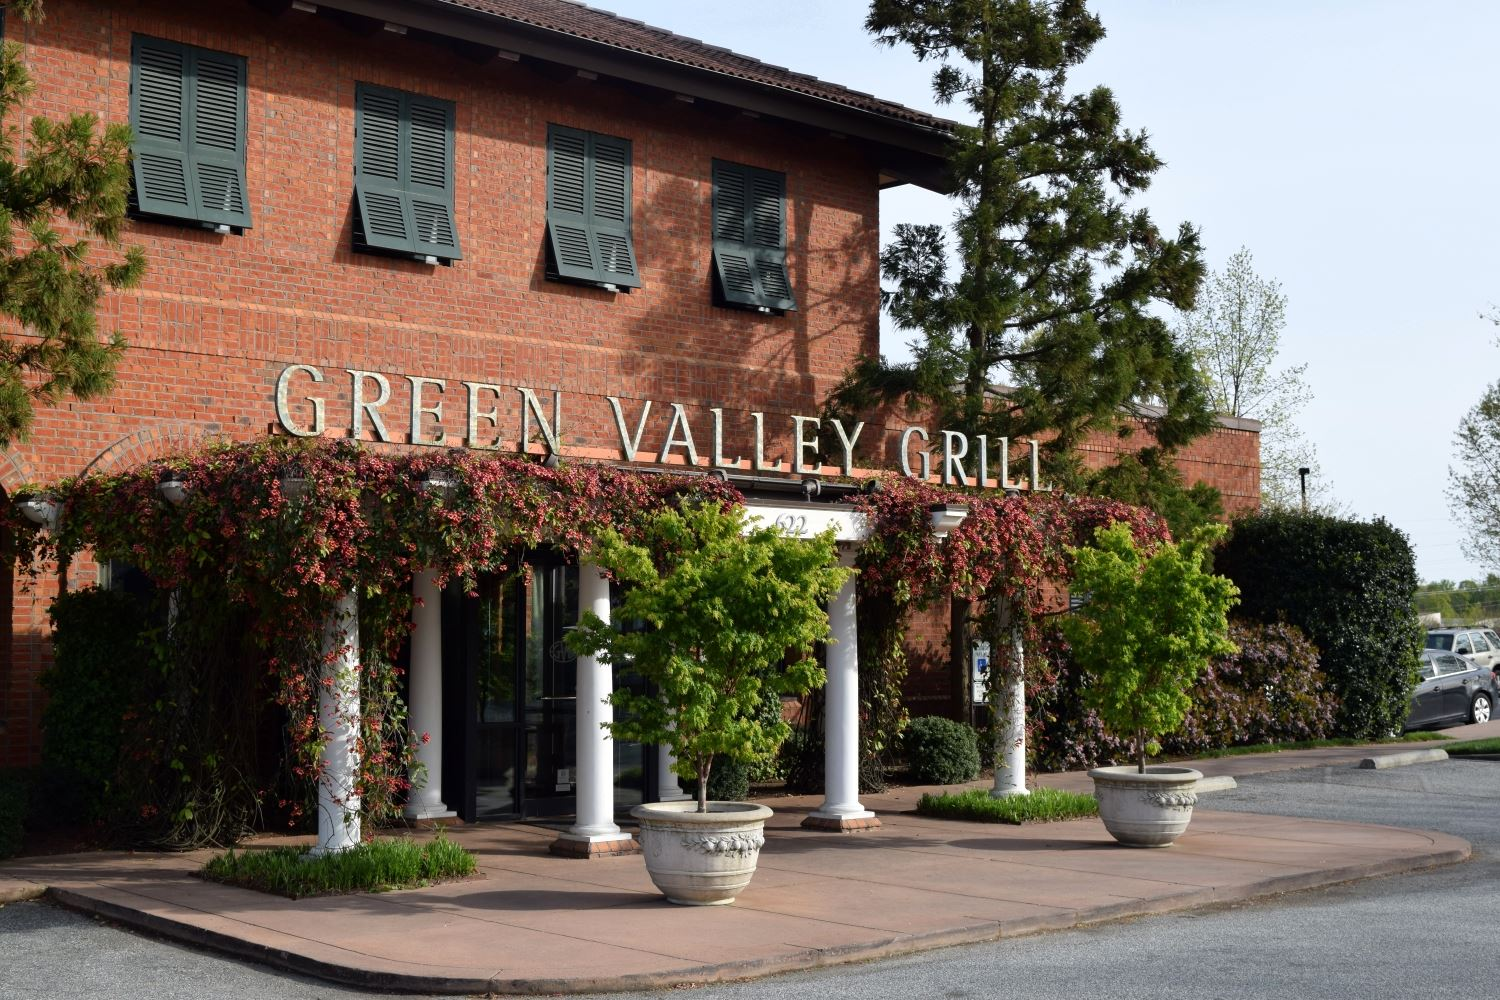 Green Valley Grill at O.Henry Hotel